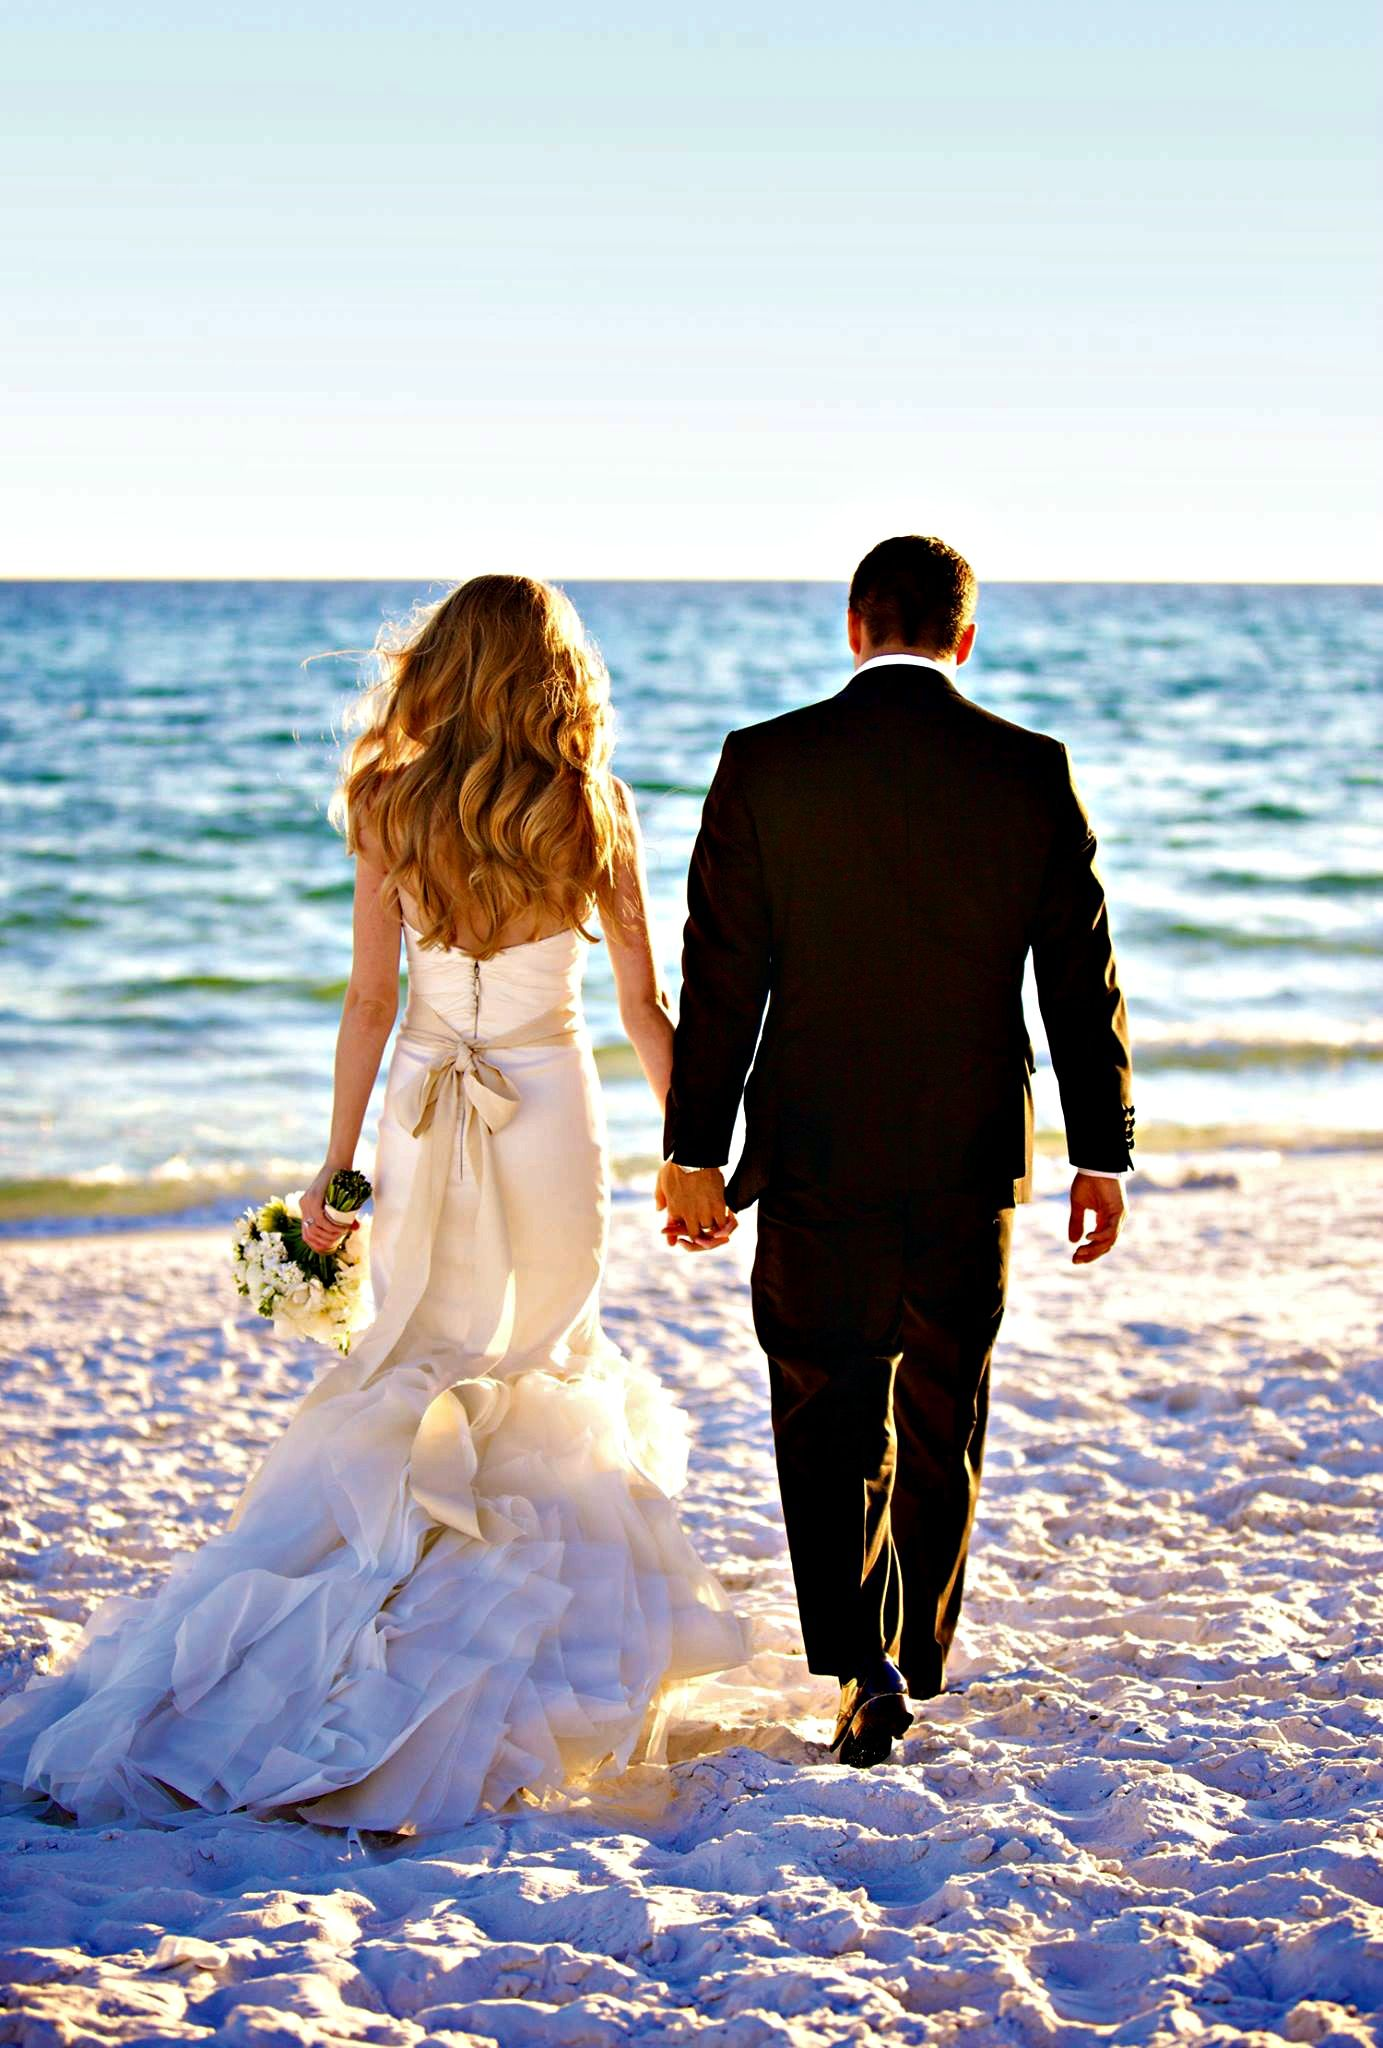 Both Romantic And Practical Beach Weddings Are Popular With Busy Couples Who Want Their Big Day To Stand Out From The Crowd